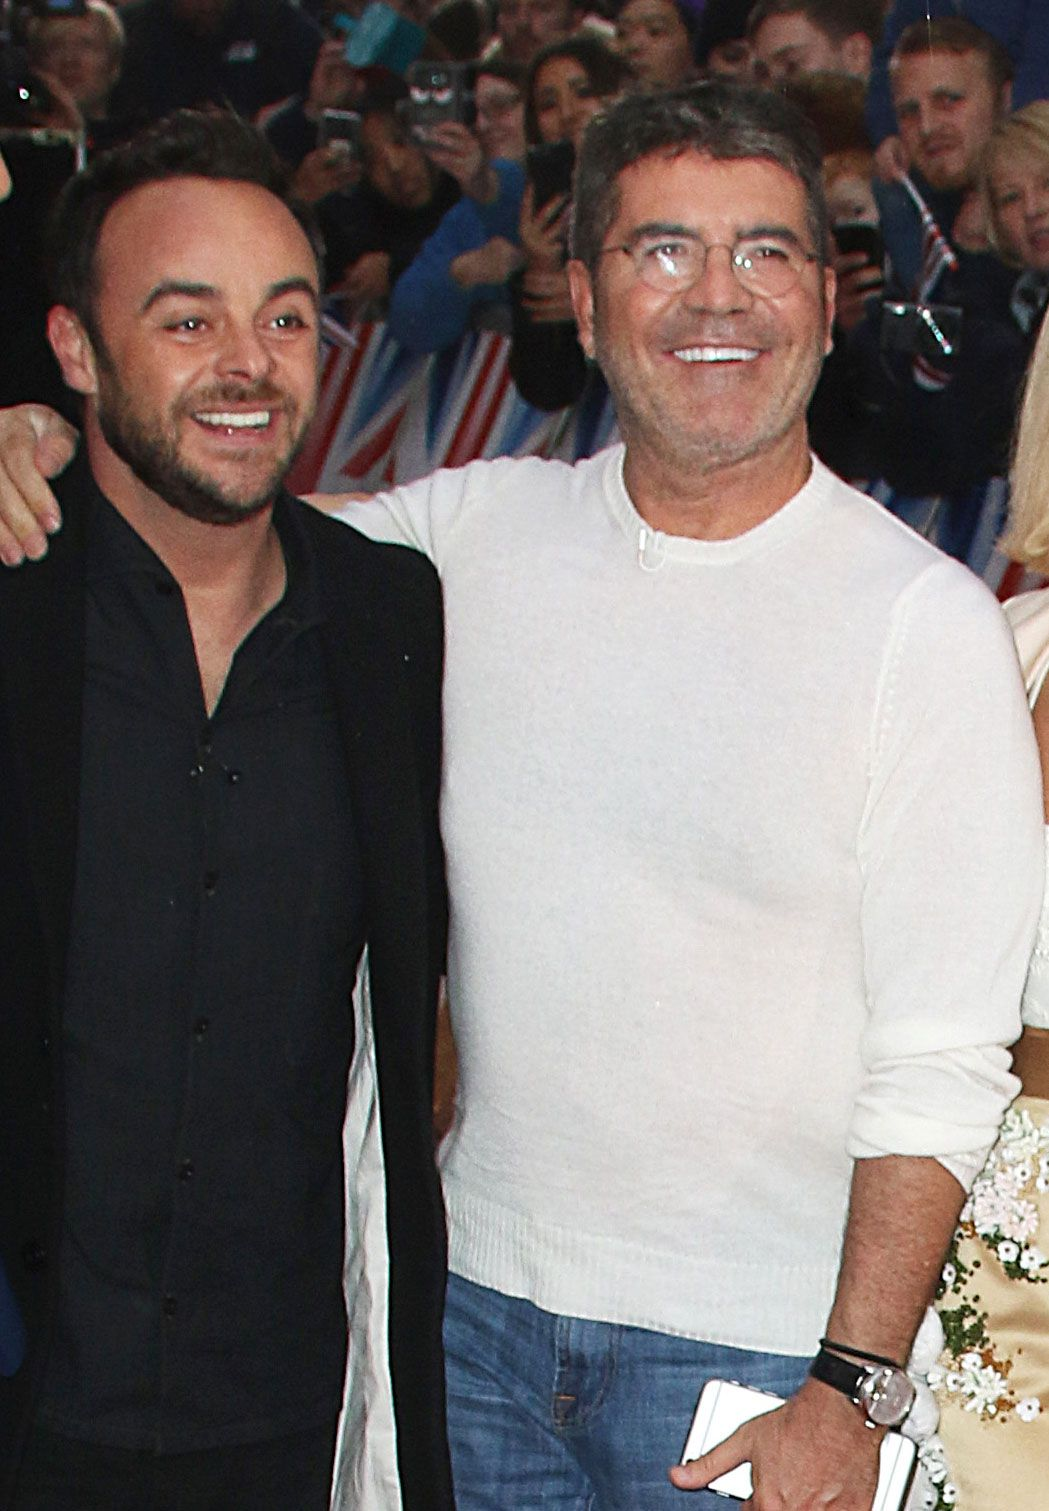 Anthony McPartlin accident